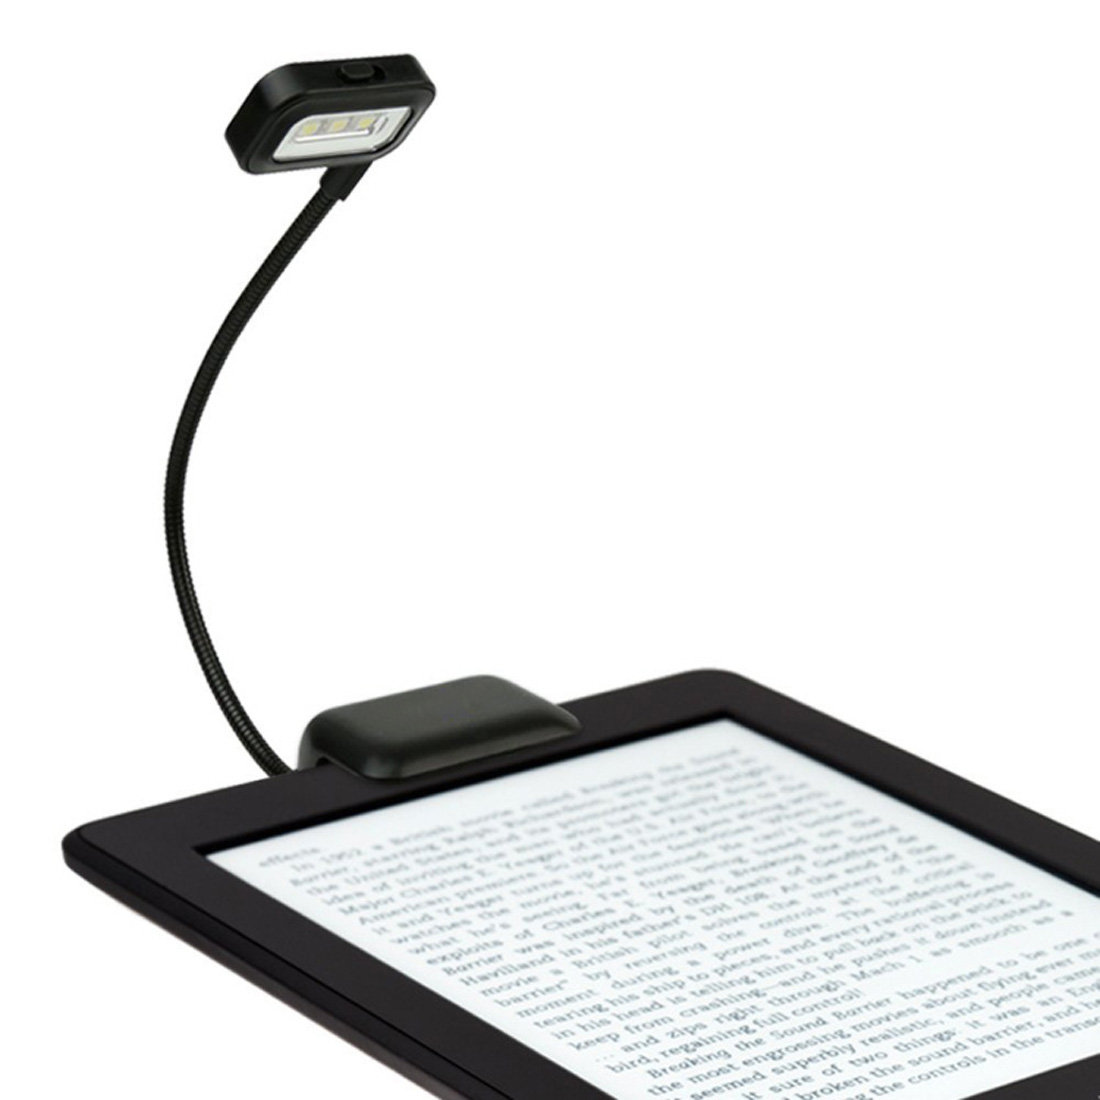 0.5W Portable Lamp Flexible Mini Clip On Reading Light Reading Lamp for Amazon Kindle/eBook Readers/ PDAs 0.5W Portable Lamp Flexible Mini Clip On Reading Light Reading Lamp for Amazon Kindle/eBook Readers/ PDAs